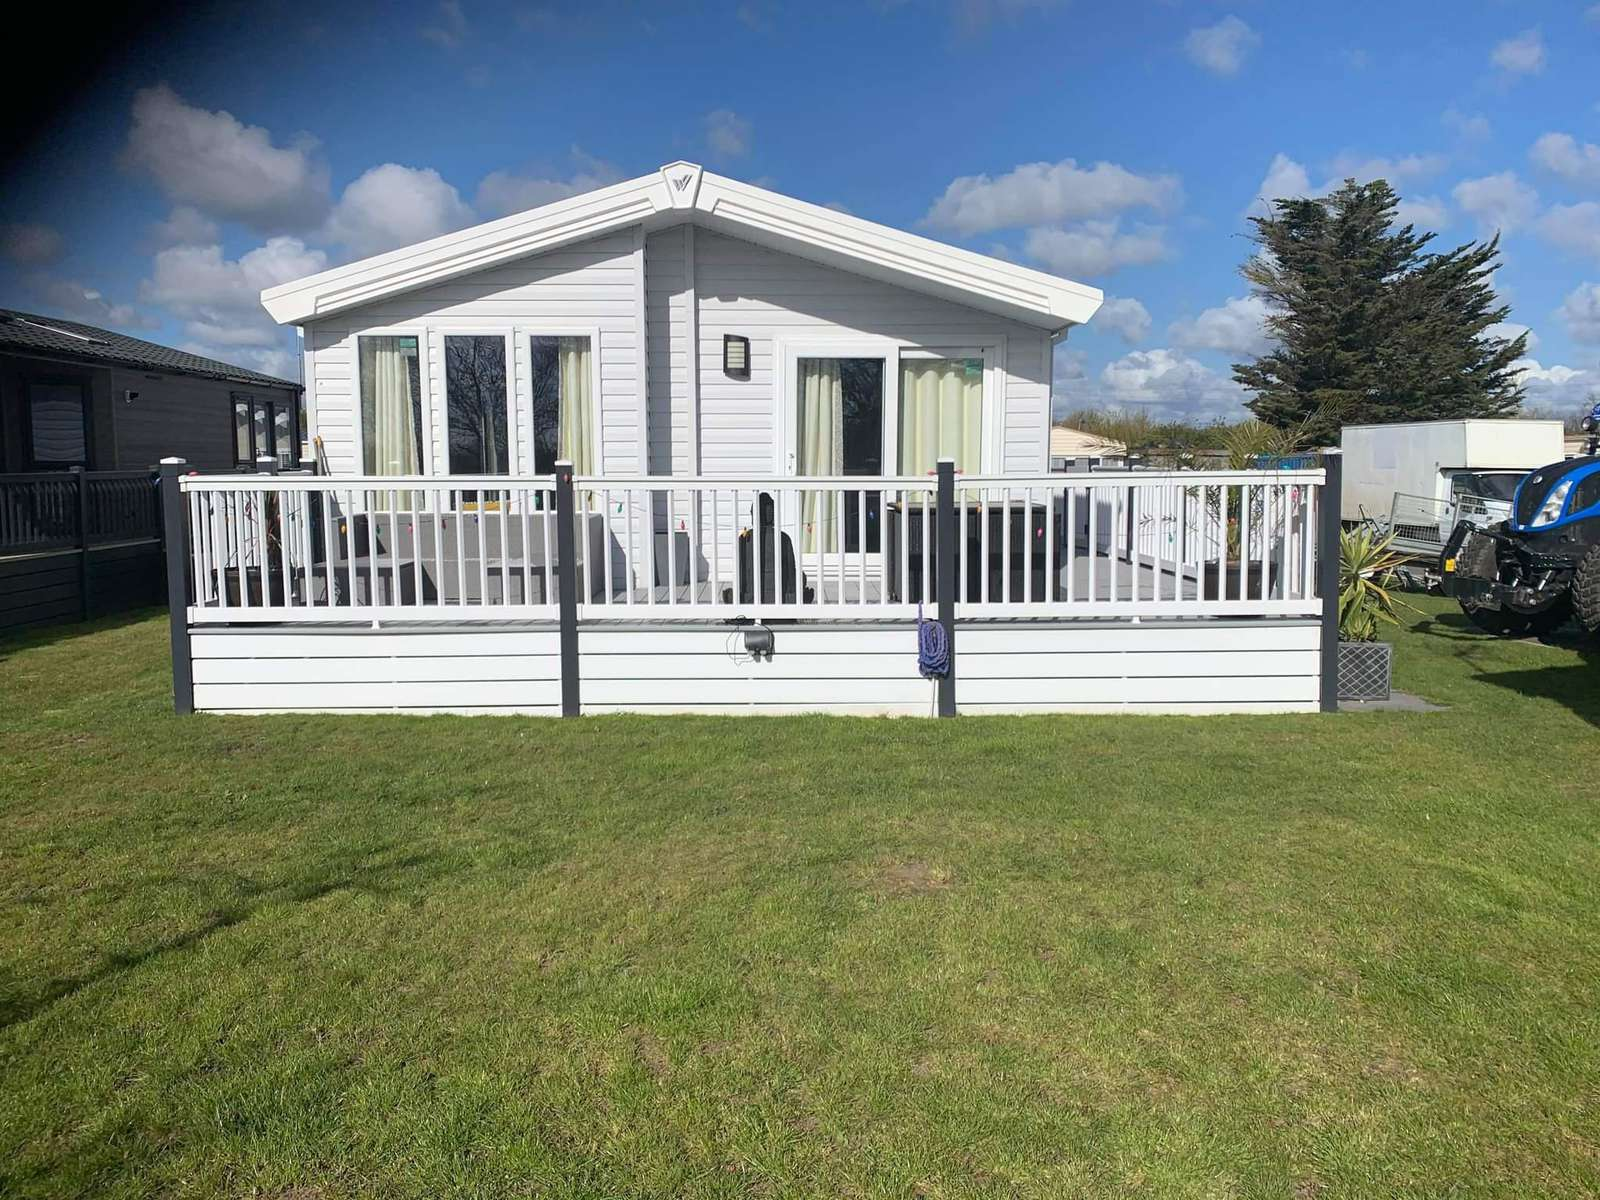 39002JW – Jasmine Way, 2 bed, 4 berth lodge with WiFi, lake view and decking. Platinum-Deluxe rated. - property